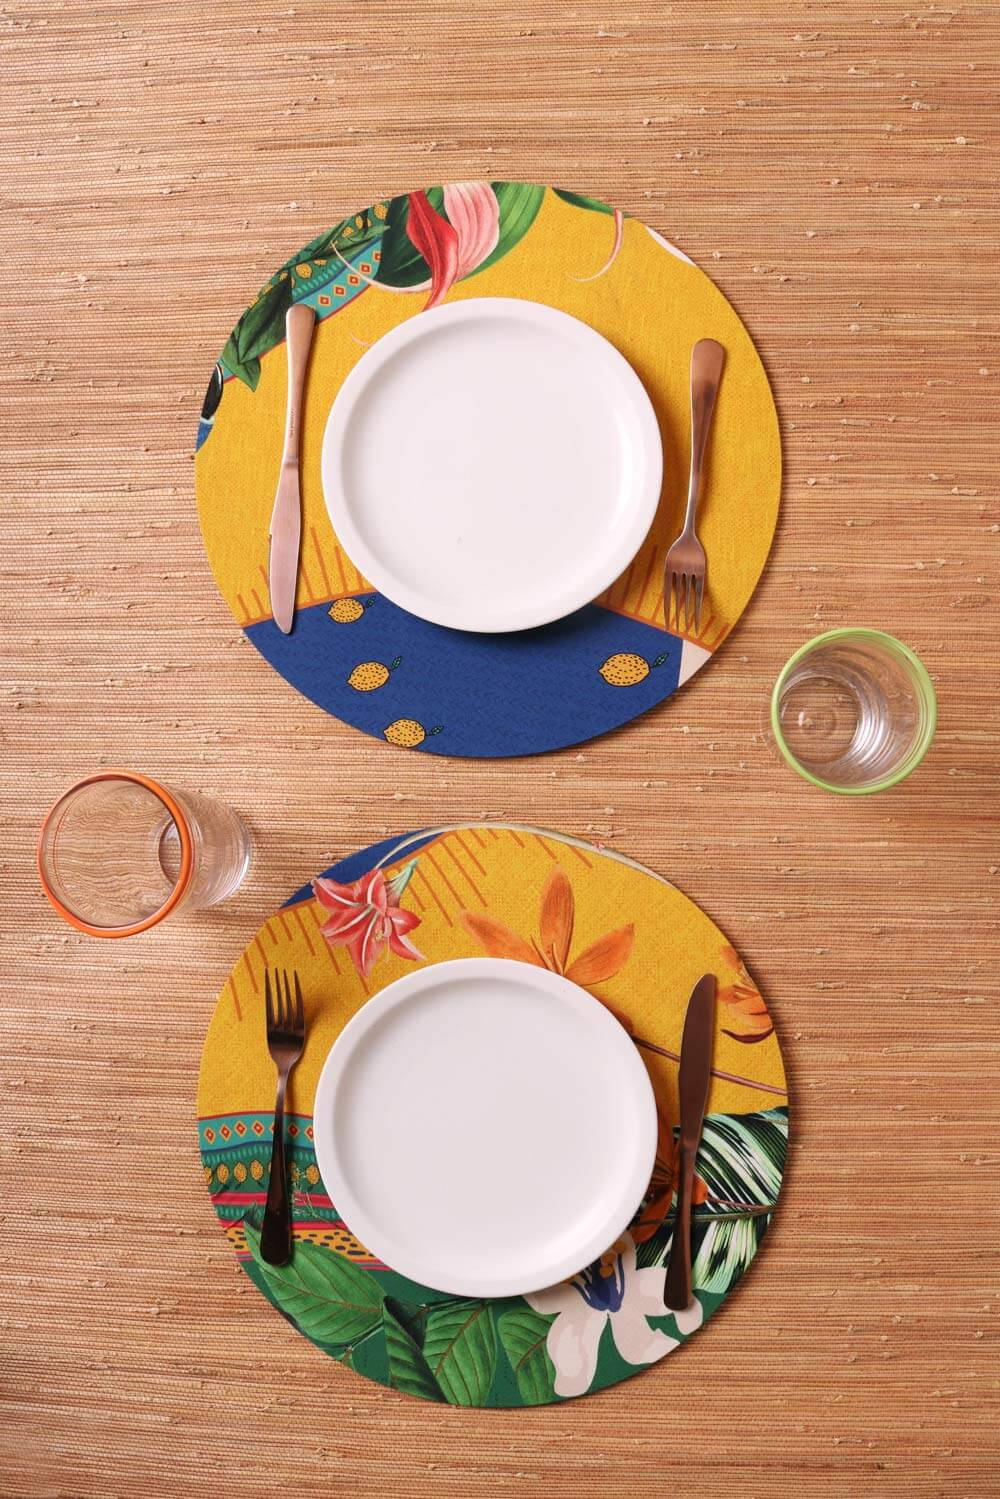 SOUPLAT ESTAMPADO KIT COM 2 UN-FLOR DO BRASIL